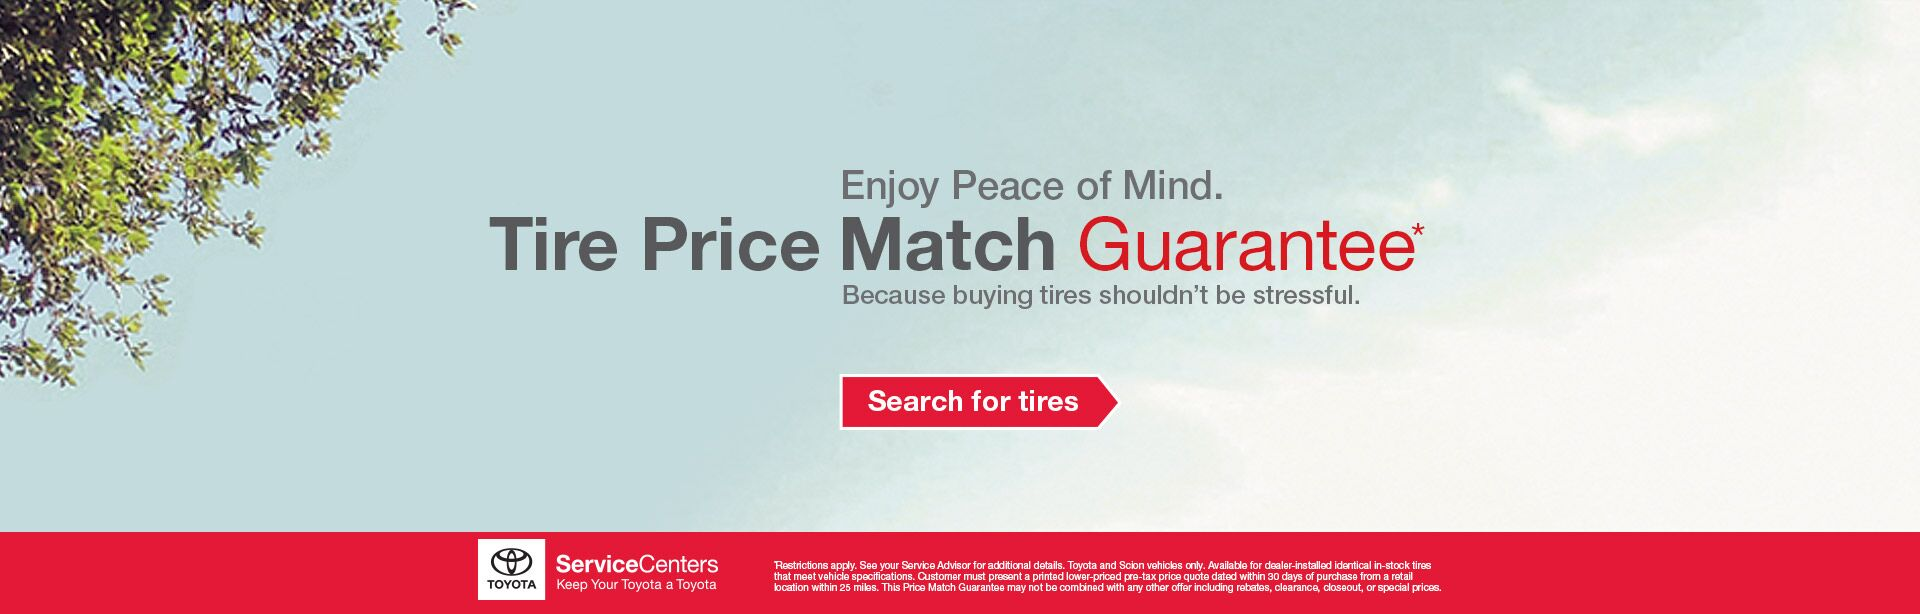 P&S Tire Price Match Guarantee